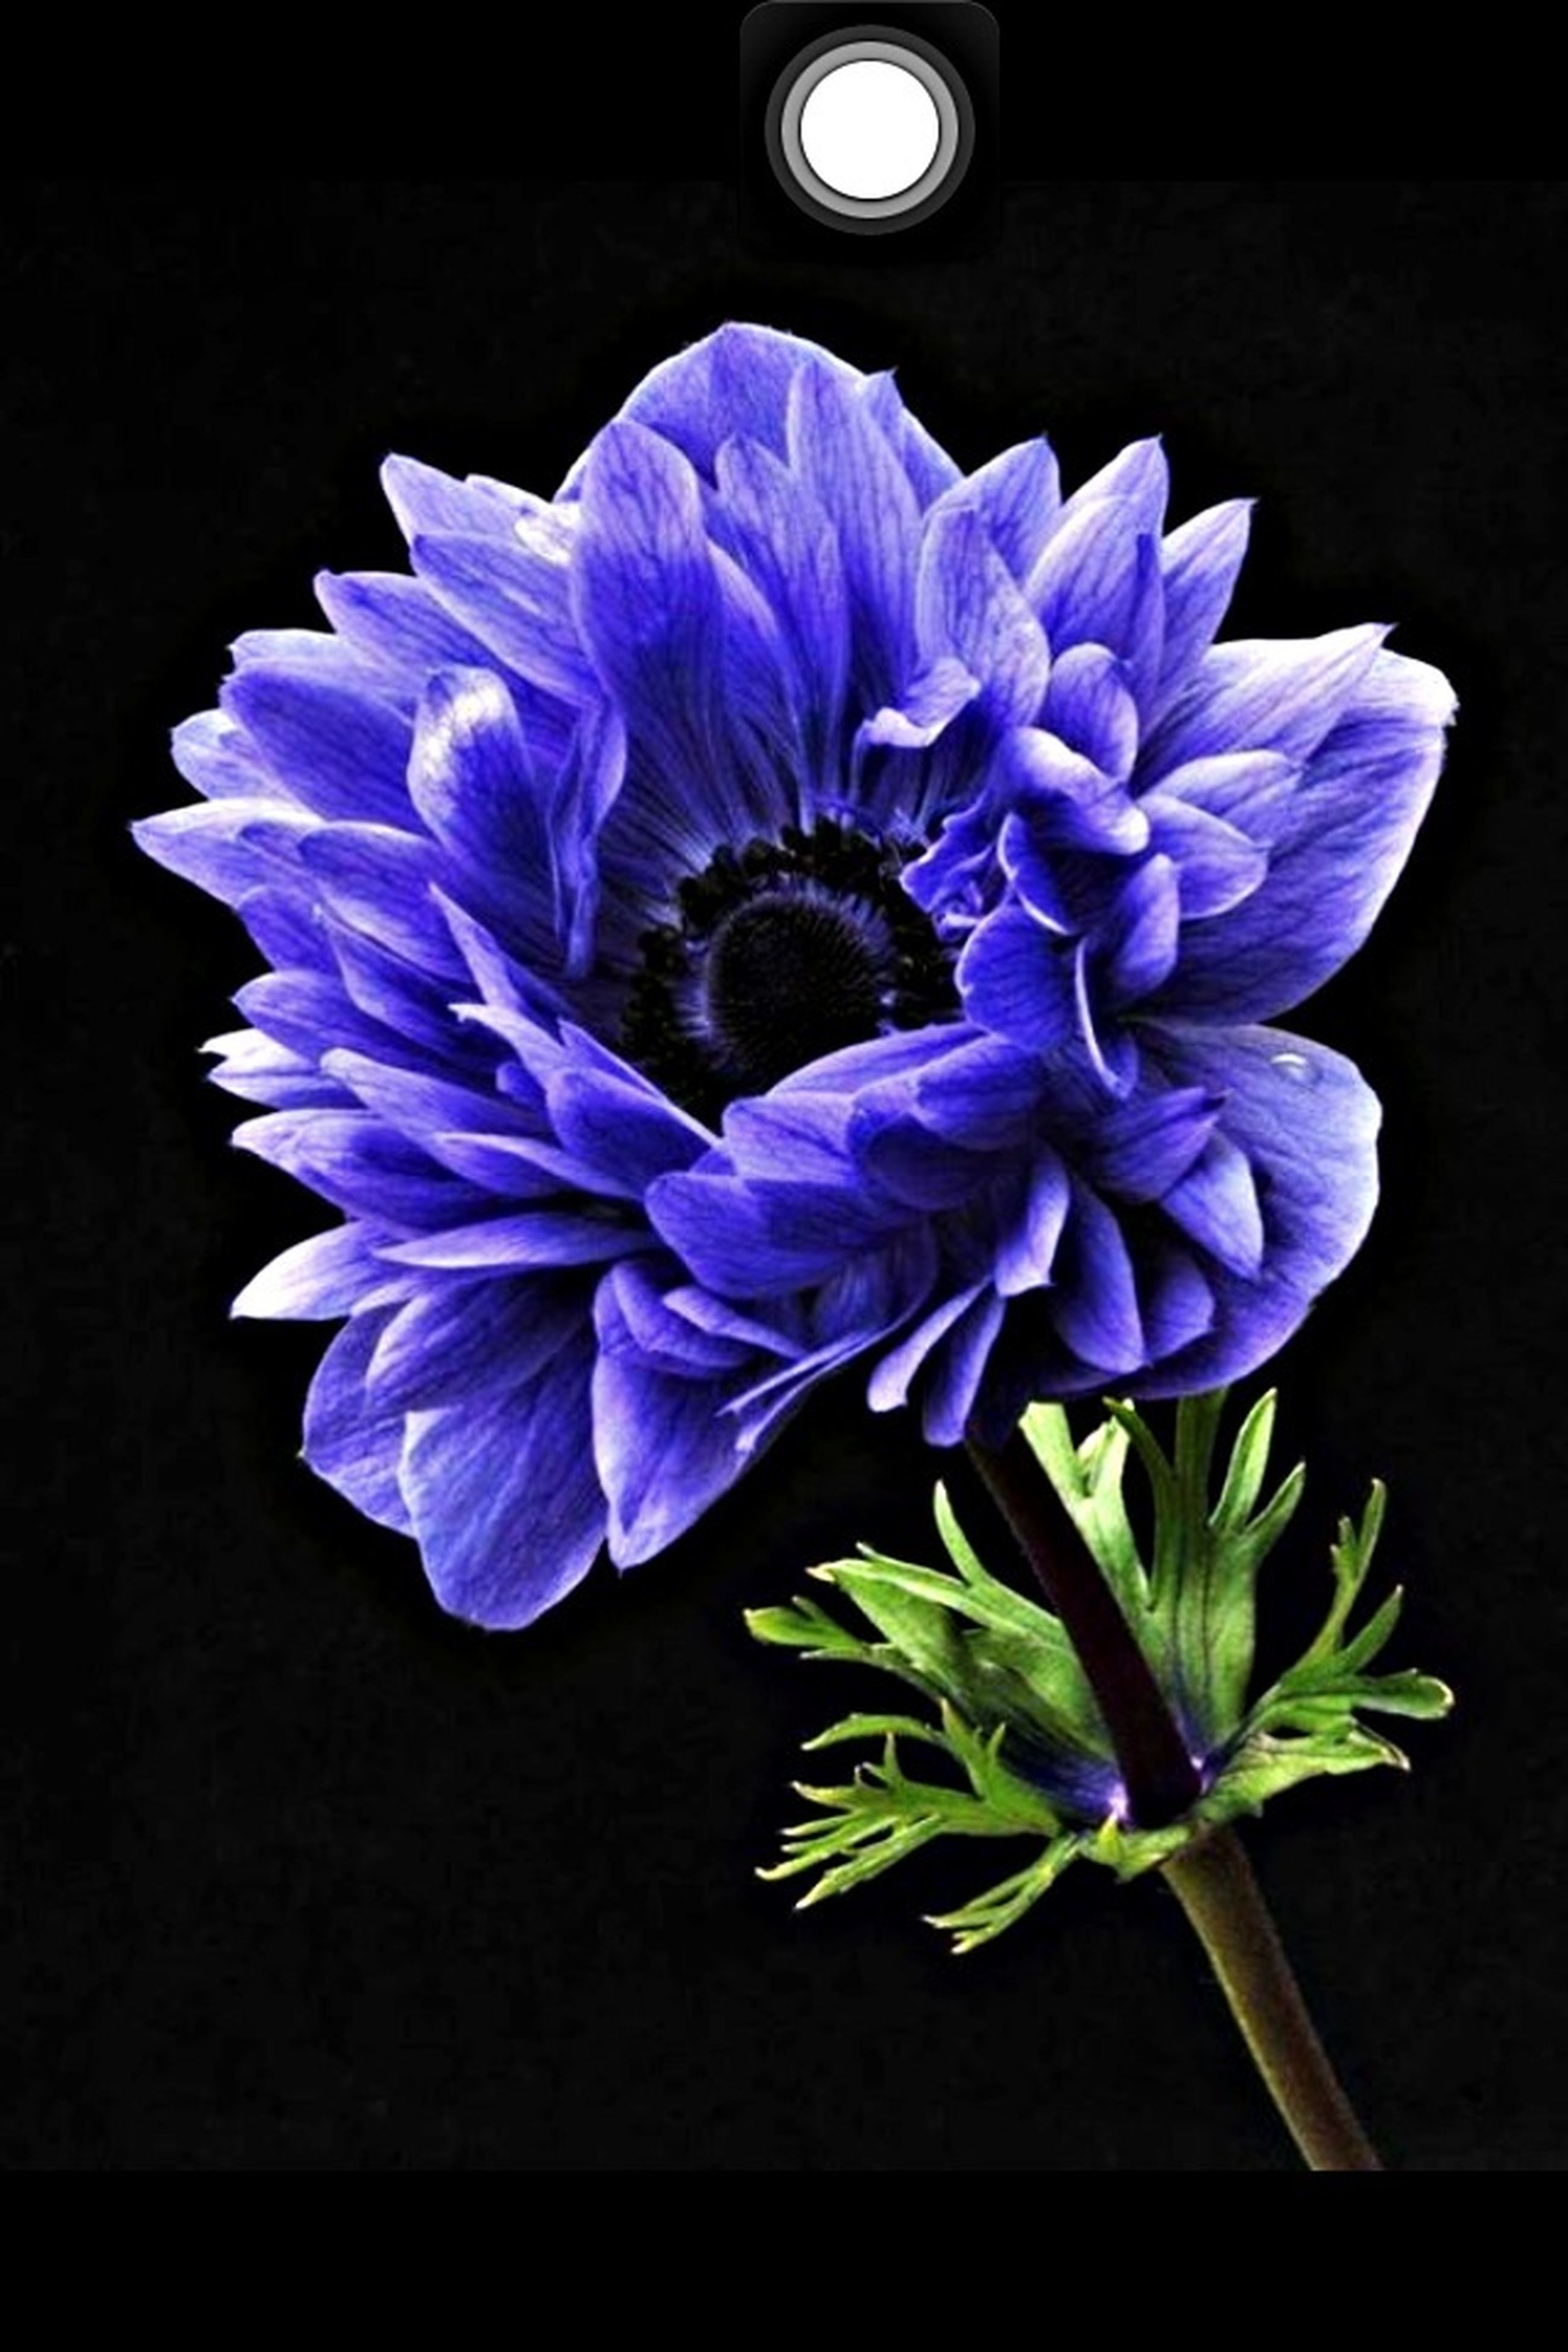 flower, beauty in nature, purple, flower head, petal, nature, blue, fragility, studio shot, freshness, close-up, no people, iris - plant, black background, outdoors, day